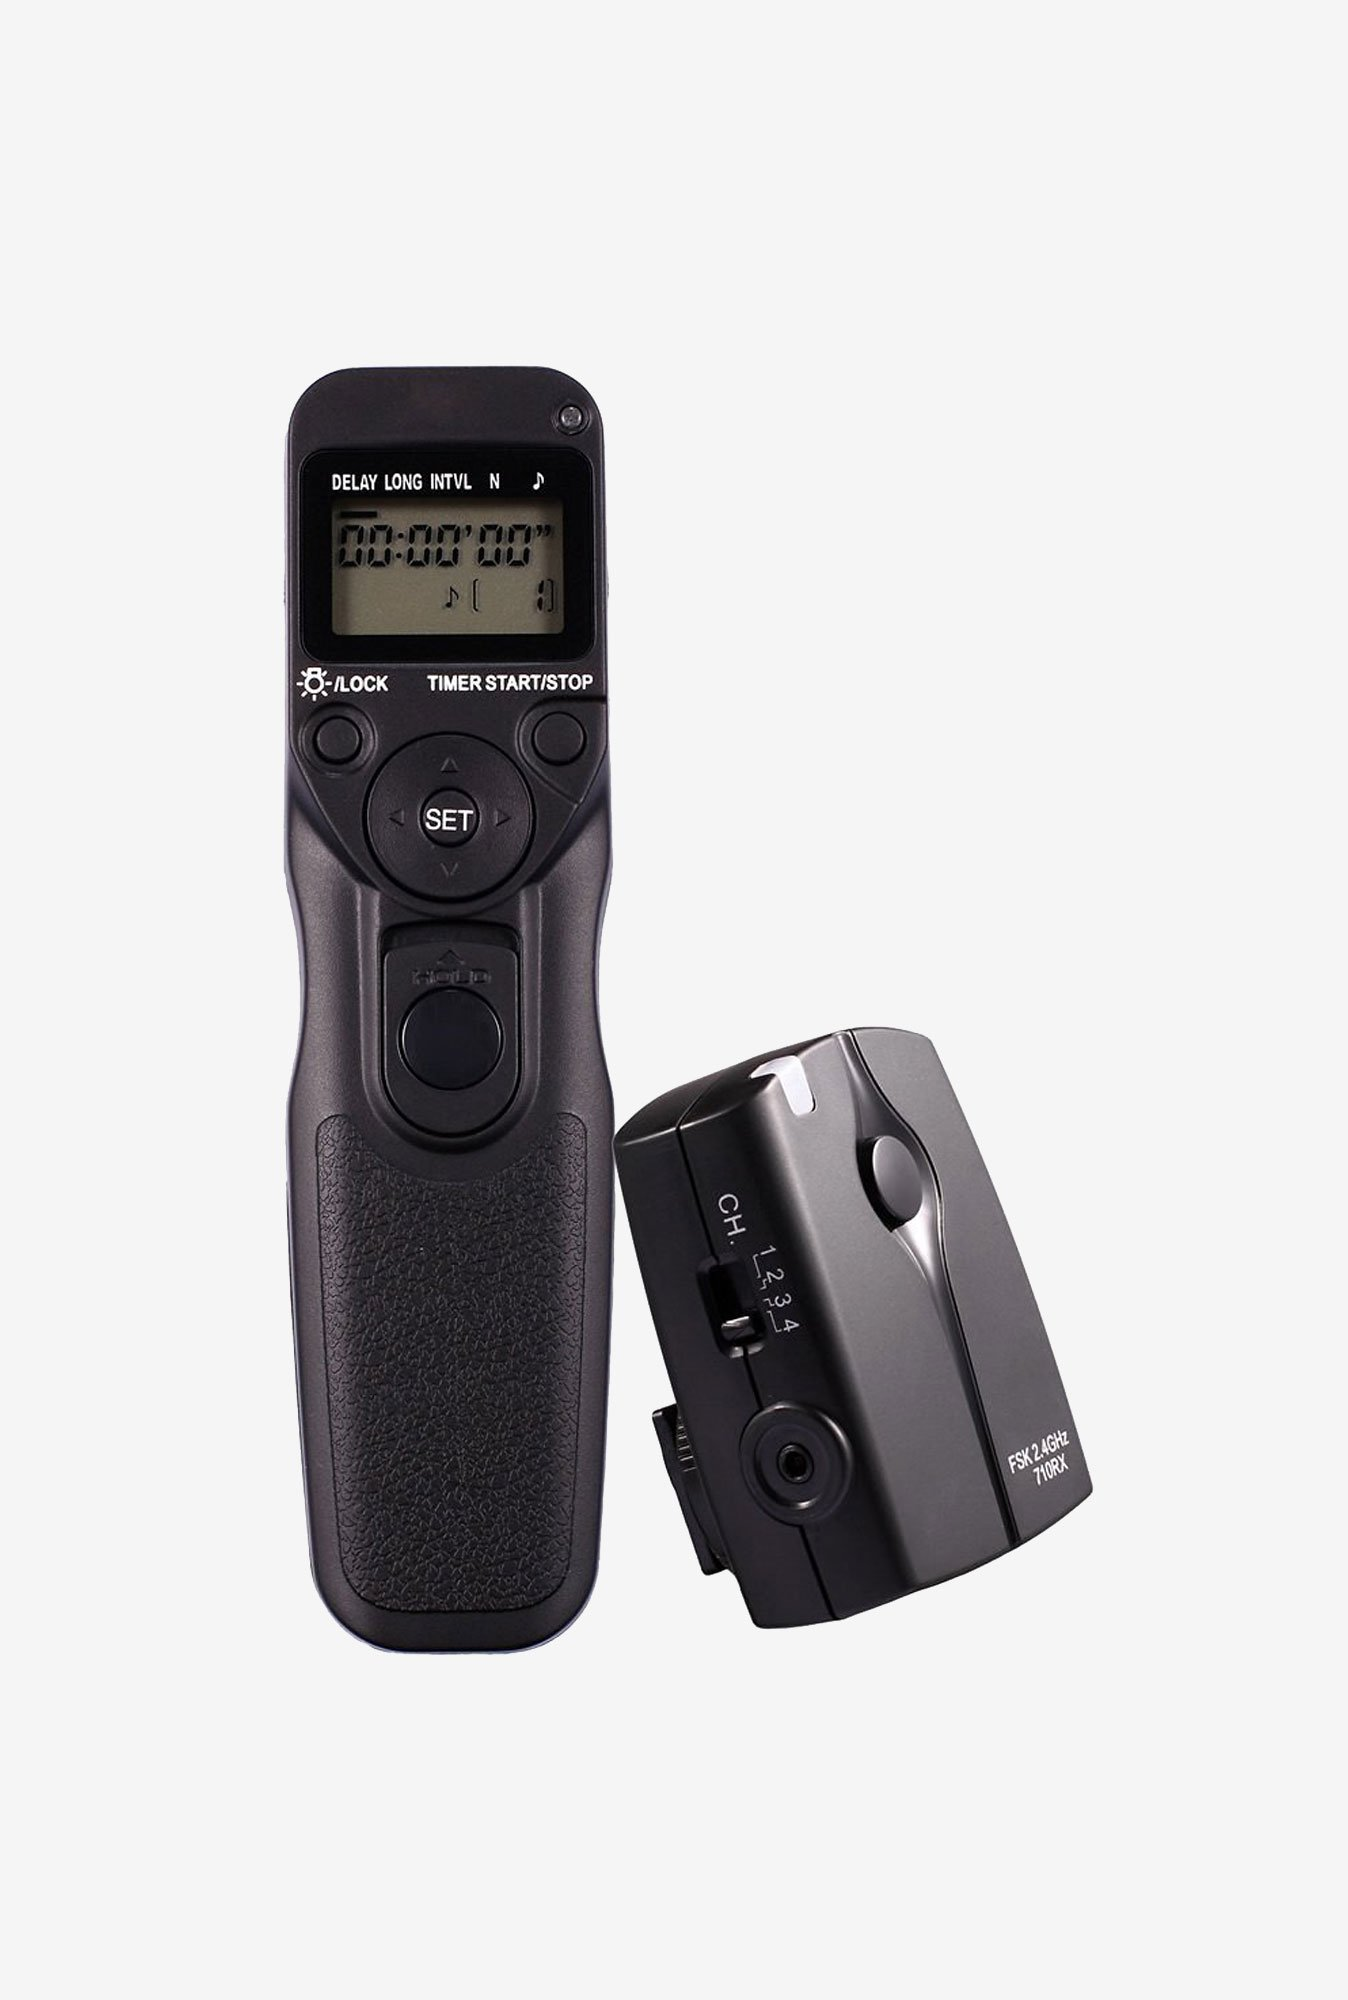 Neewer 2.4 Ghz Fsk Wireless Timer Remote for Nikon